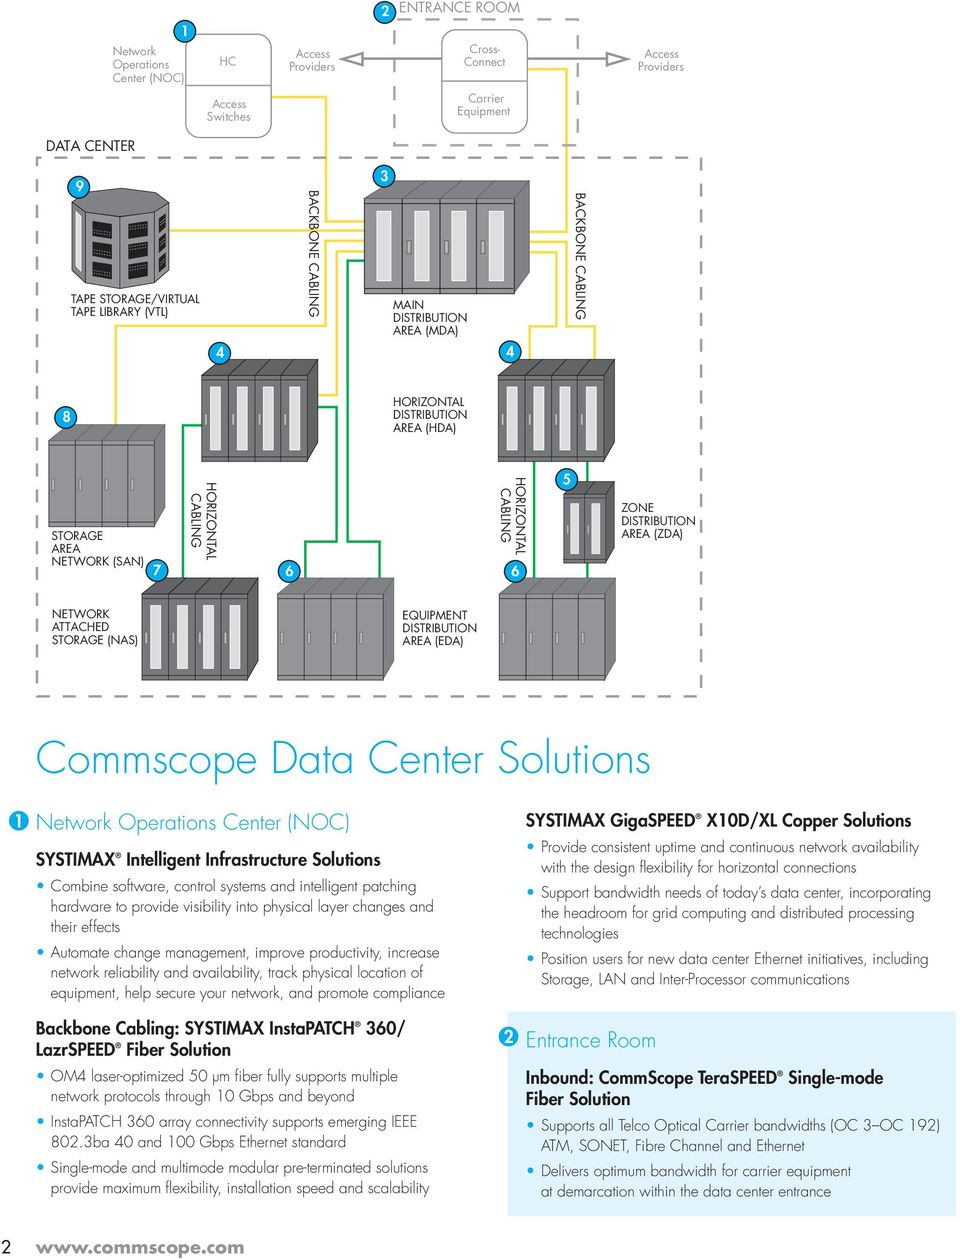 AREA (EDA) Commscope Data Center Solutions 1 Network Operations Center (NOC) SYSTIMAX Intelligent Infrastructure Solutions Combine software, control systems and intelligent patching hardware to